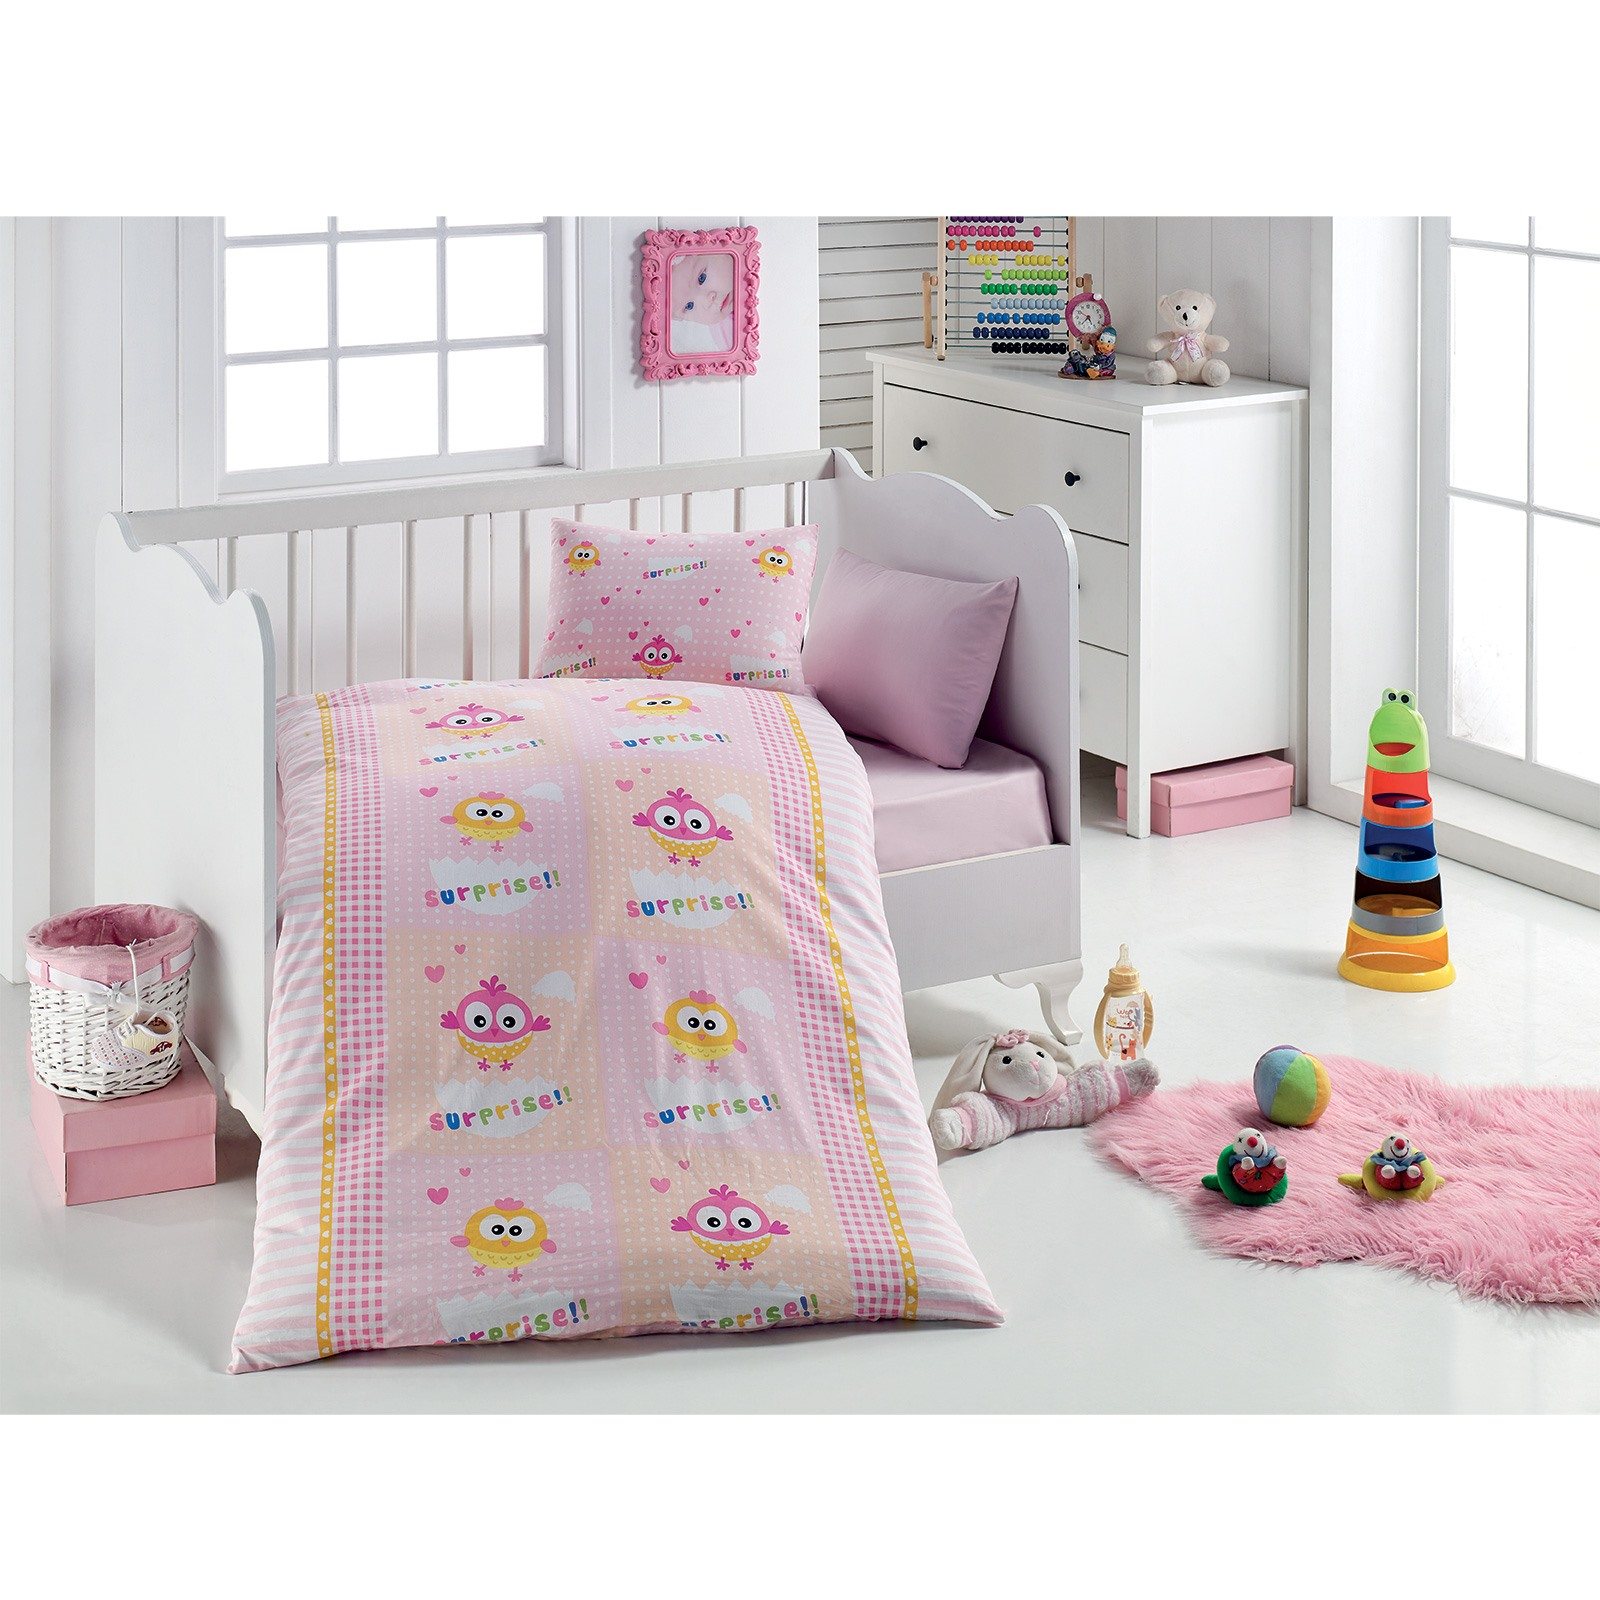 Ebebek Little Dreams Baby Chick Patterned Duvet Cover Set